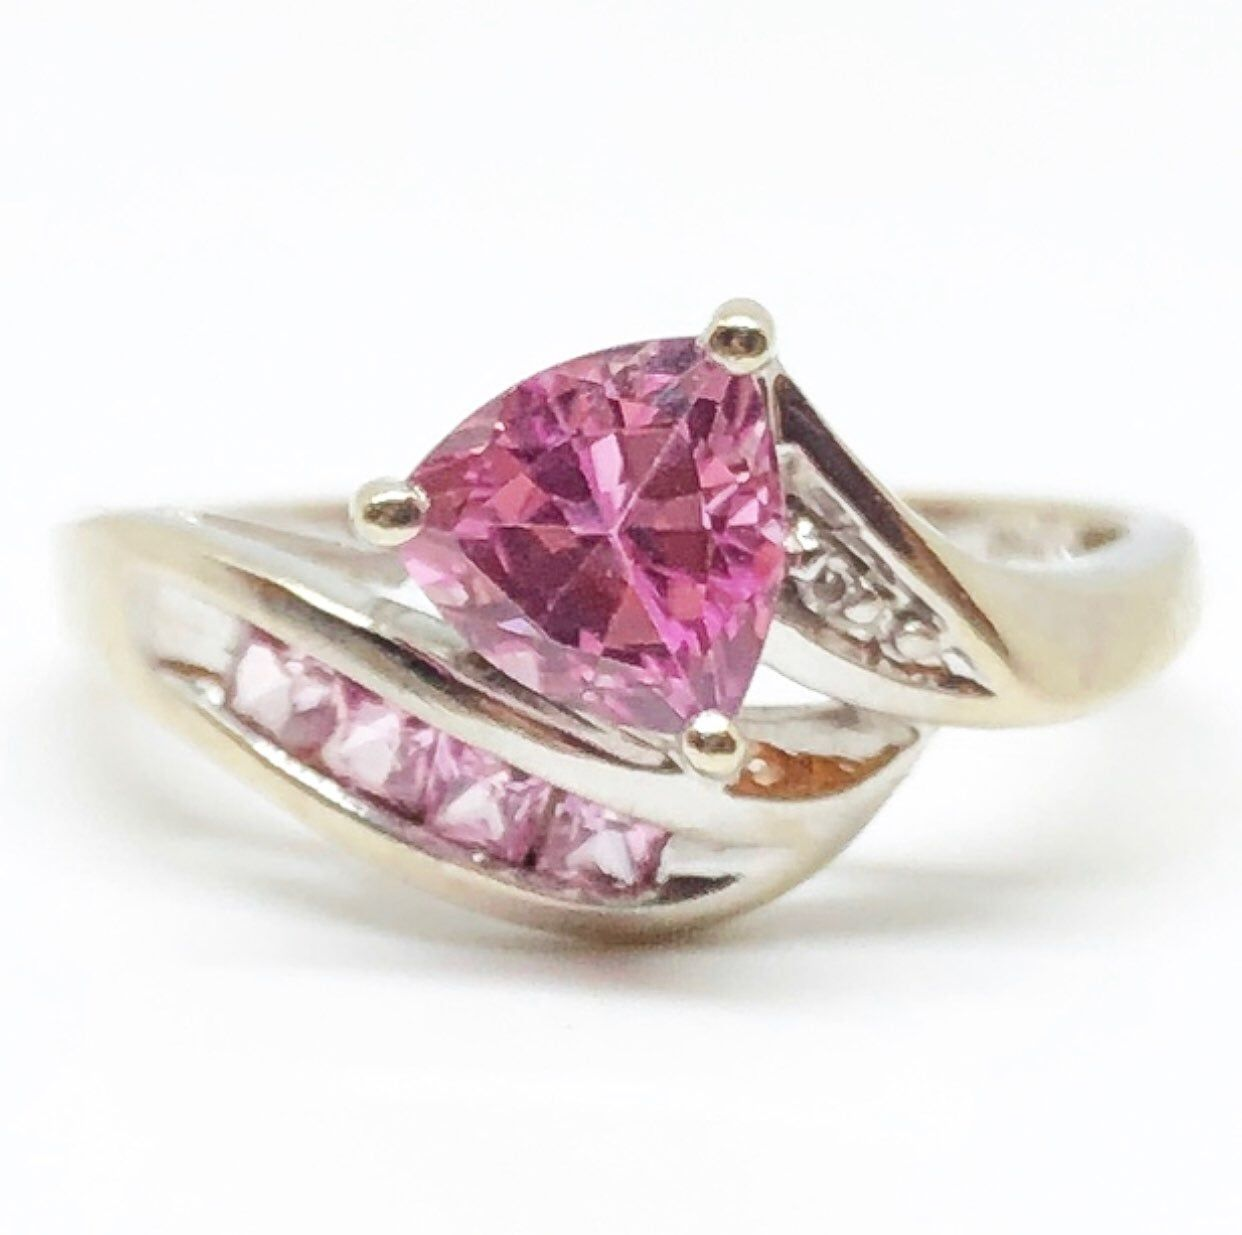 This Is An Absolutely Beautiful Genuine Pink Sapphire And Diamond Ring In Solid 10k White Gold Size 7 The Ring Sh Pink Sapphire Kay Jewelers Rings White Gold